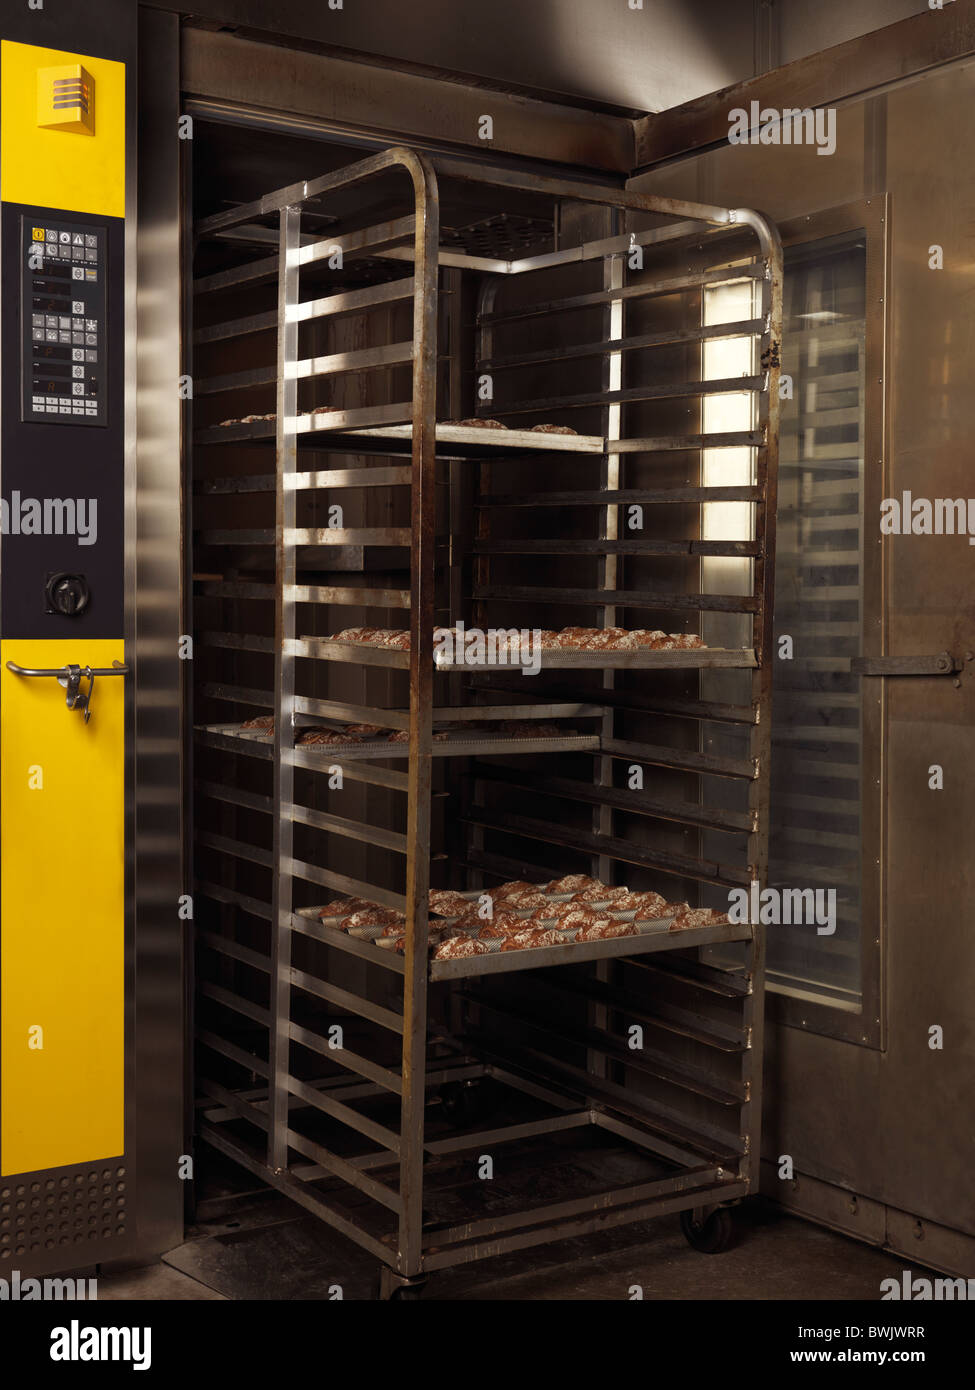 Rack trolley with freshly baked buns in a bakery oven - Stock Image